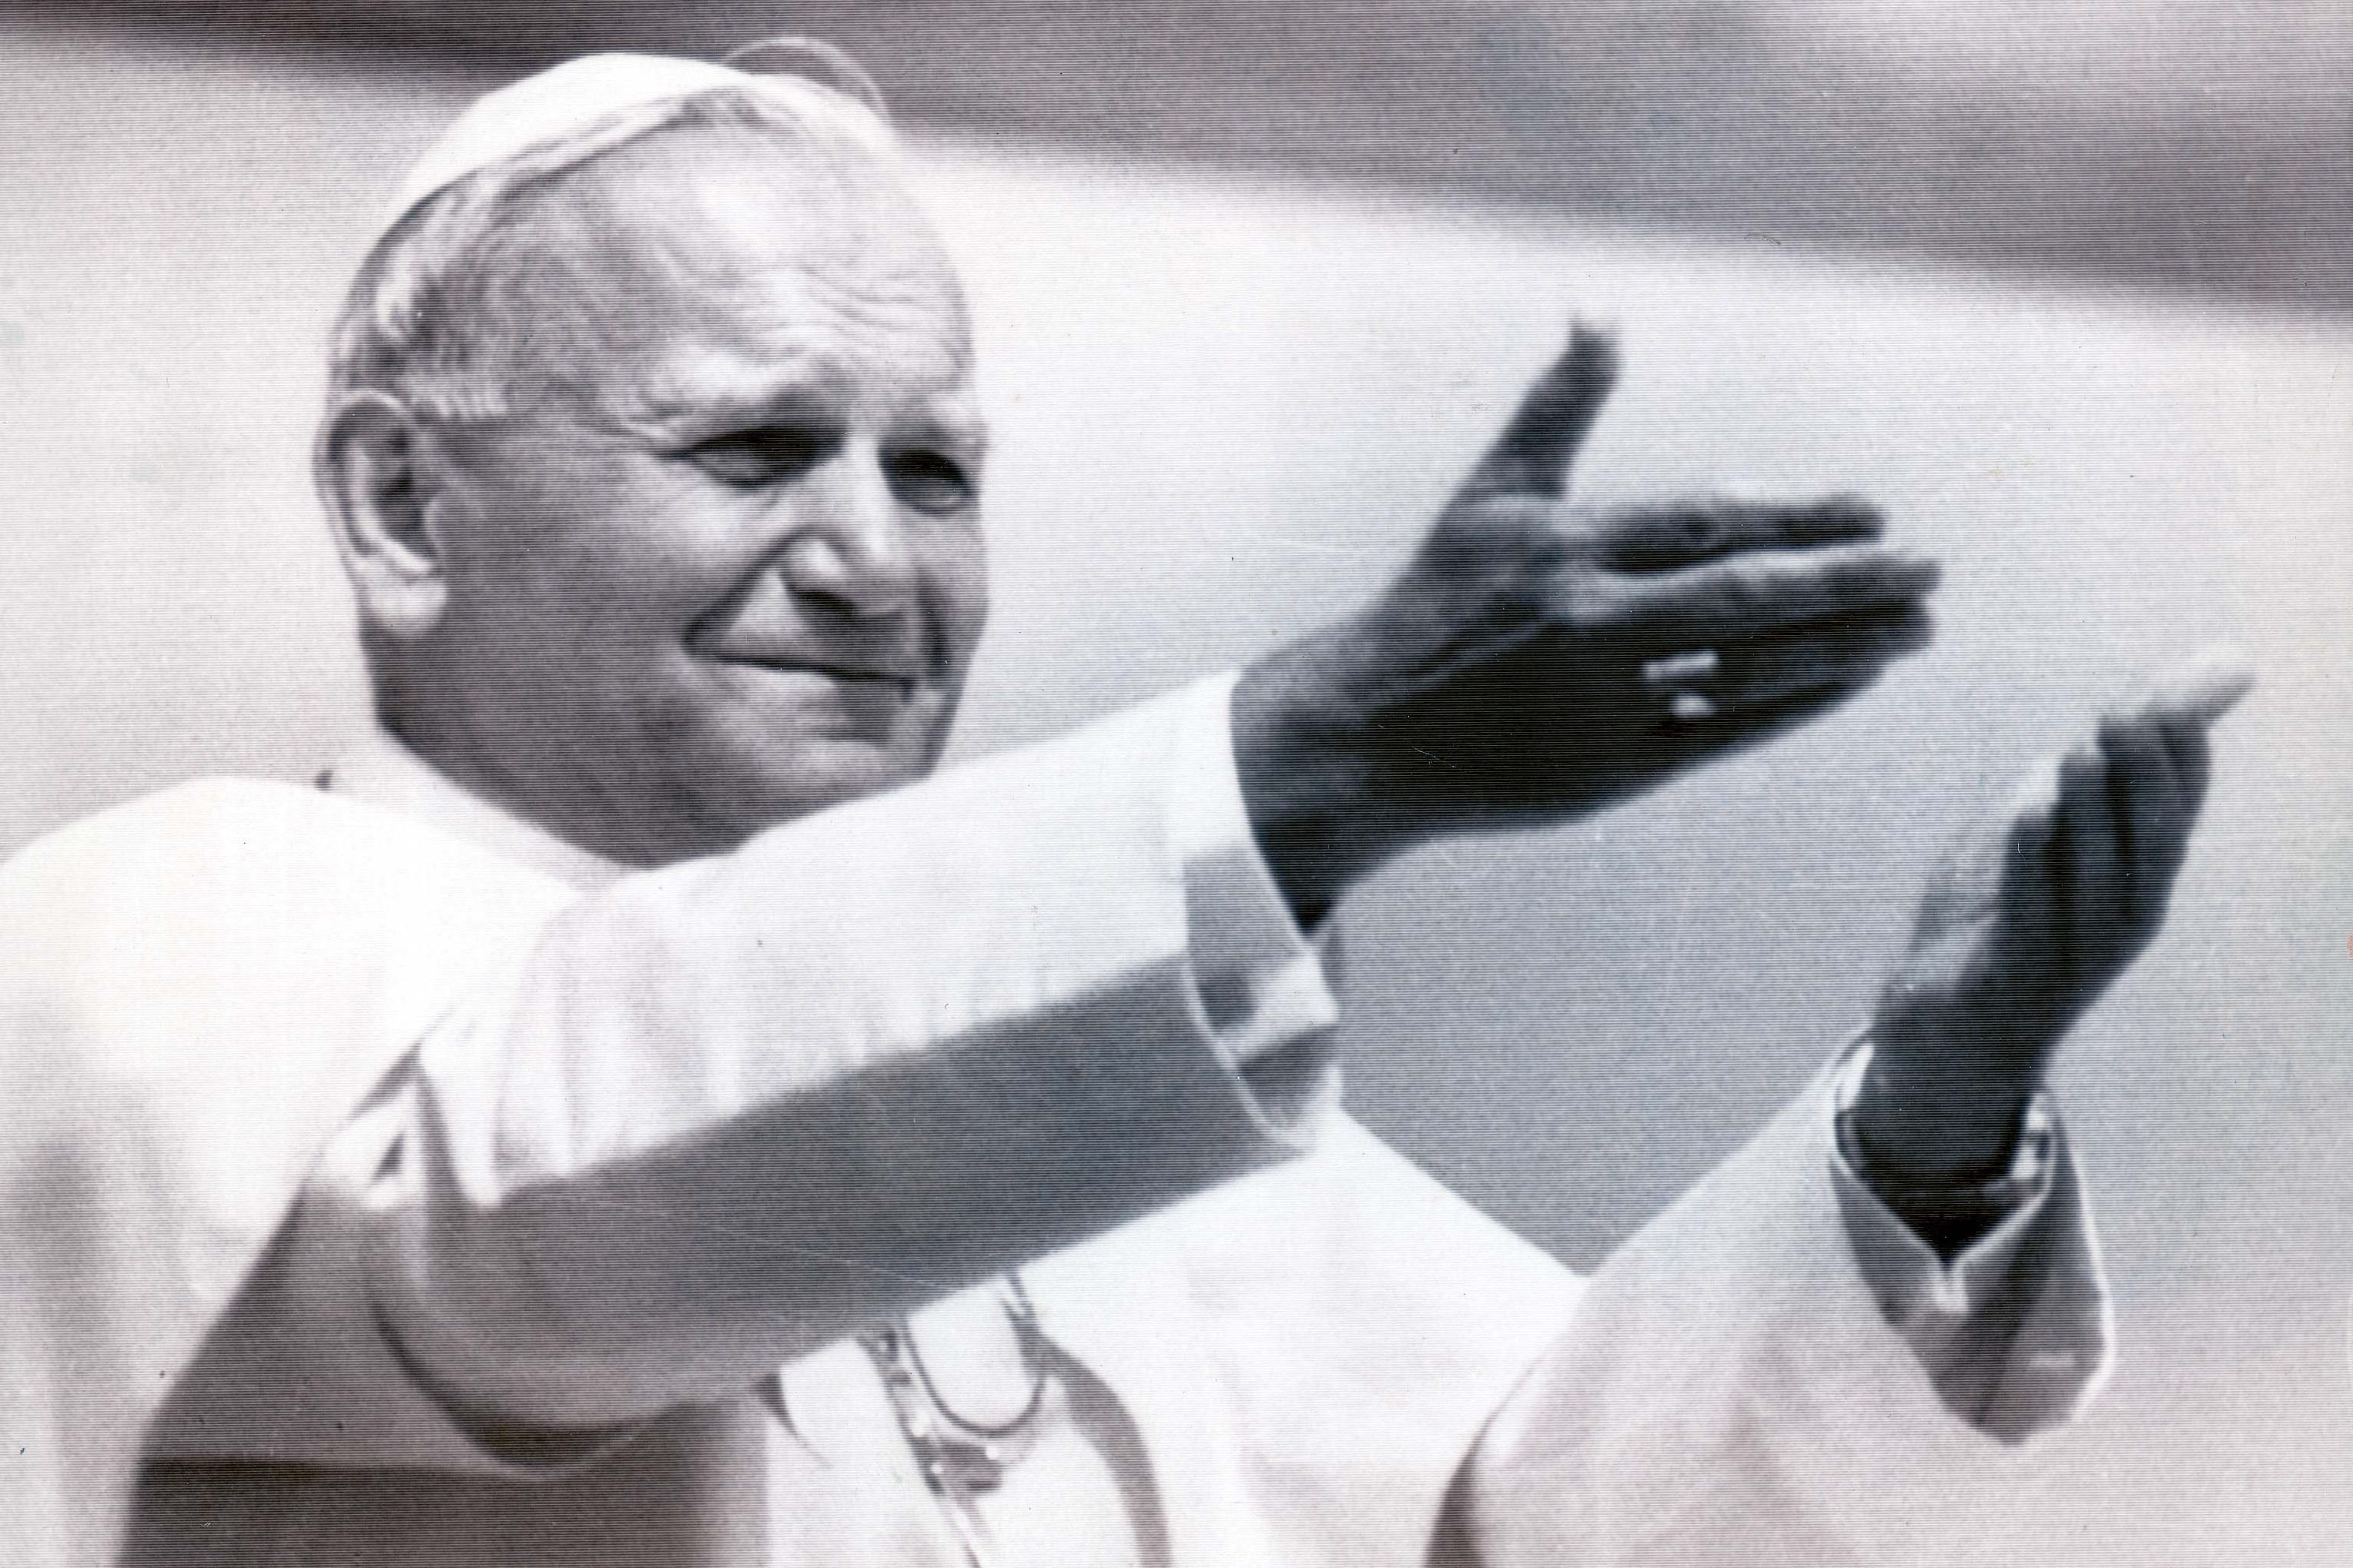 Mandatory Credit: Photo by Monty Fresco/Daily Mail/Shutterstock (1033675a) Pope John Paul Ii 1979 Pope John Paul Ii (dead April 2005) Blesses The Crowd During Pontificial Mass At Special Altar In Blonie District. ...popes Pope John Paul Ii 1979 Pope John Paul Ii (dead April 2005) Blesses The Crowd During Pontificial Mass At Special Altar In Blonie District. ...popes